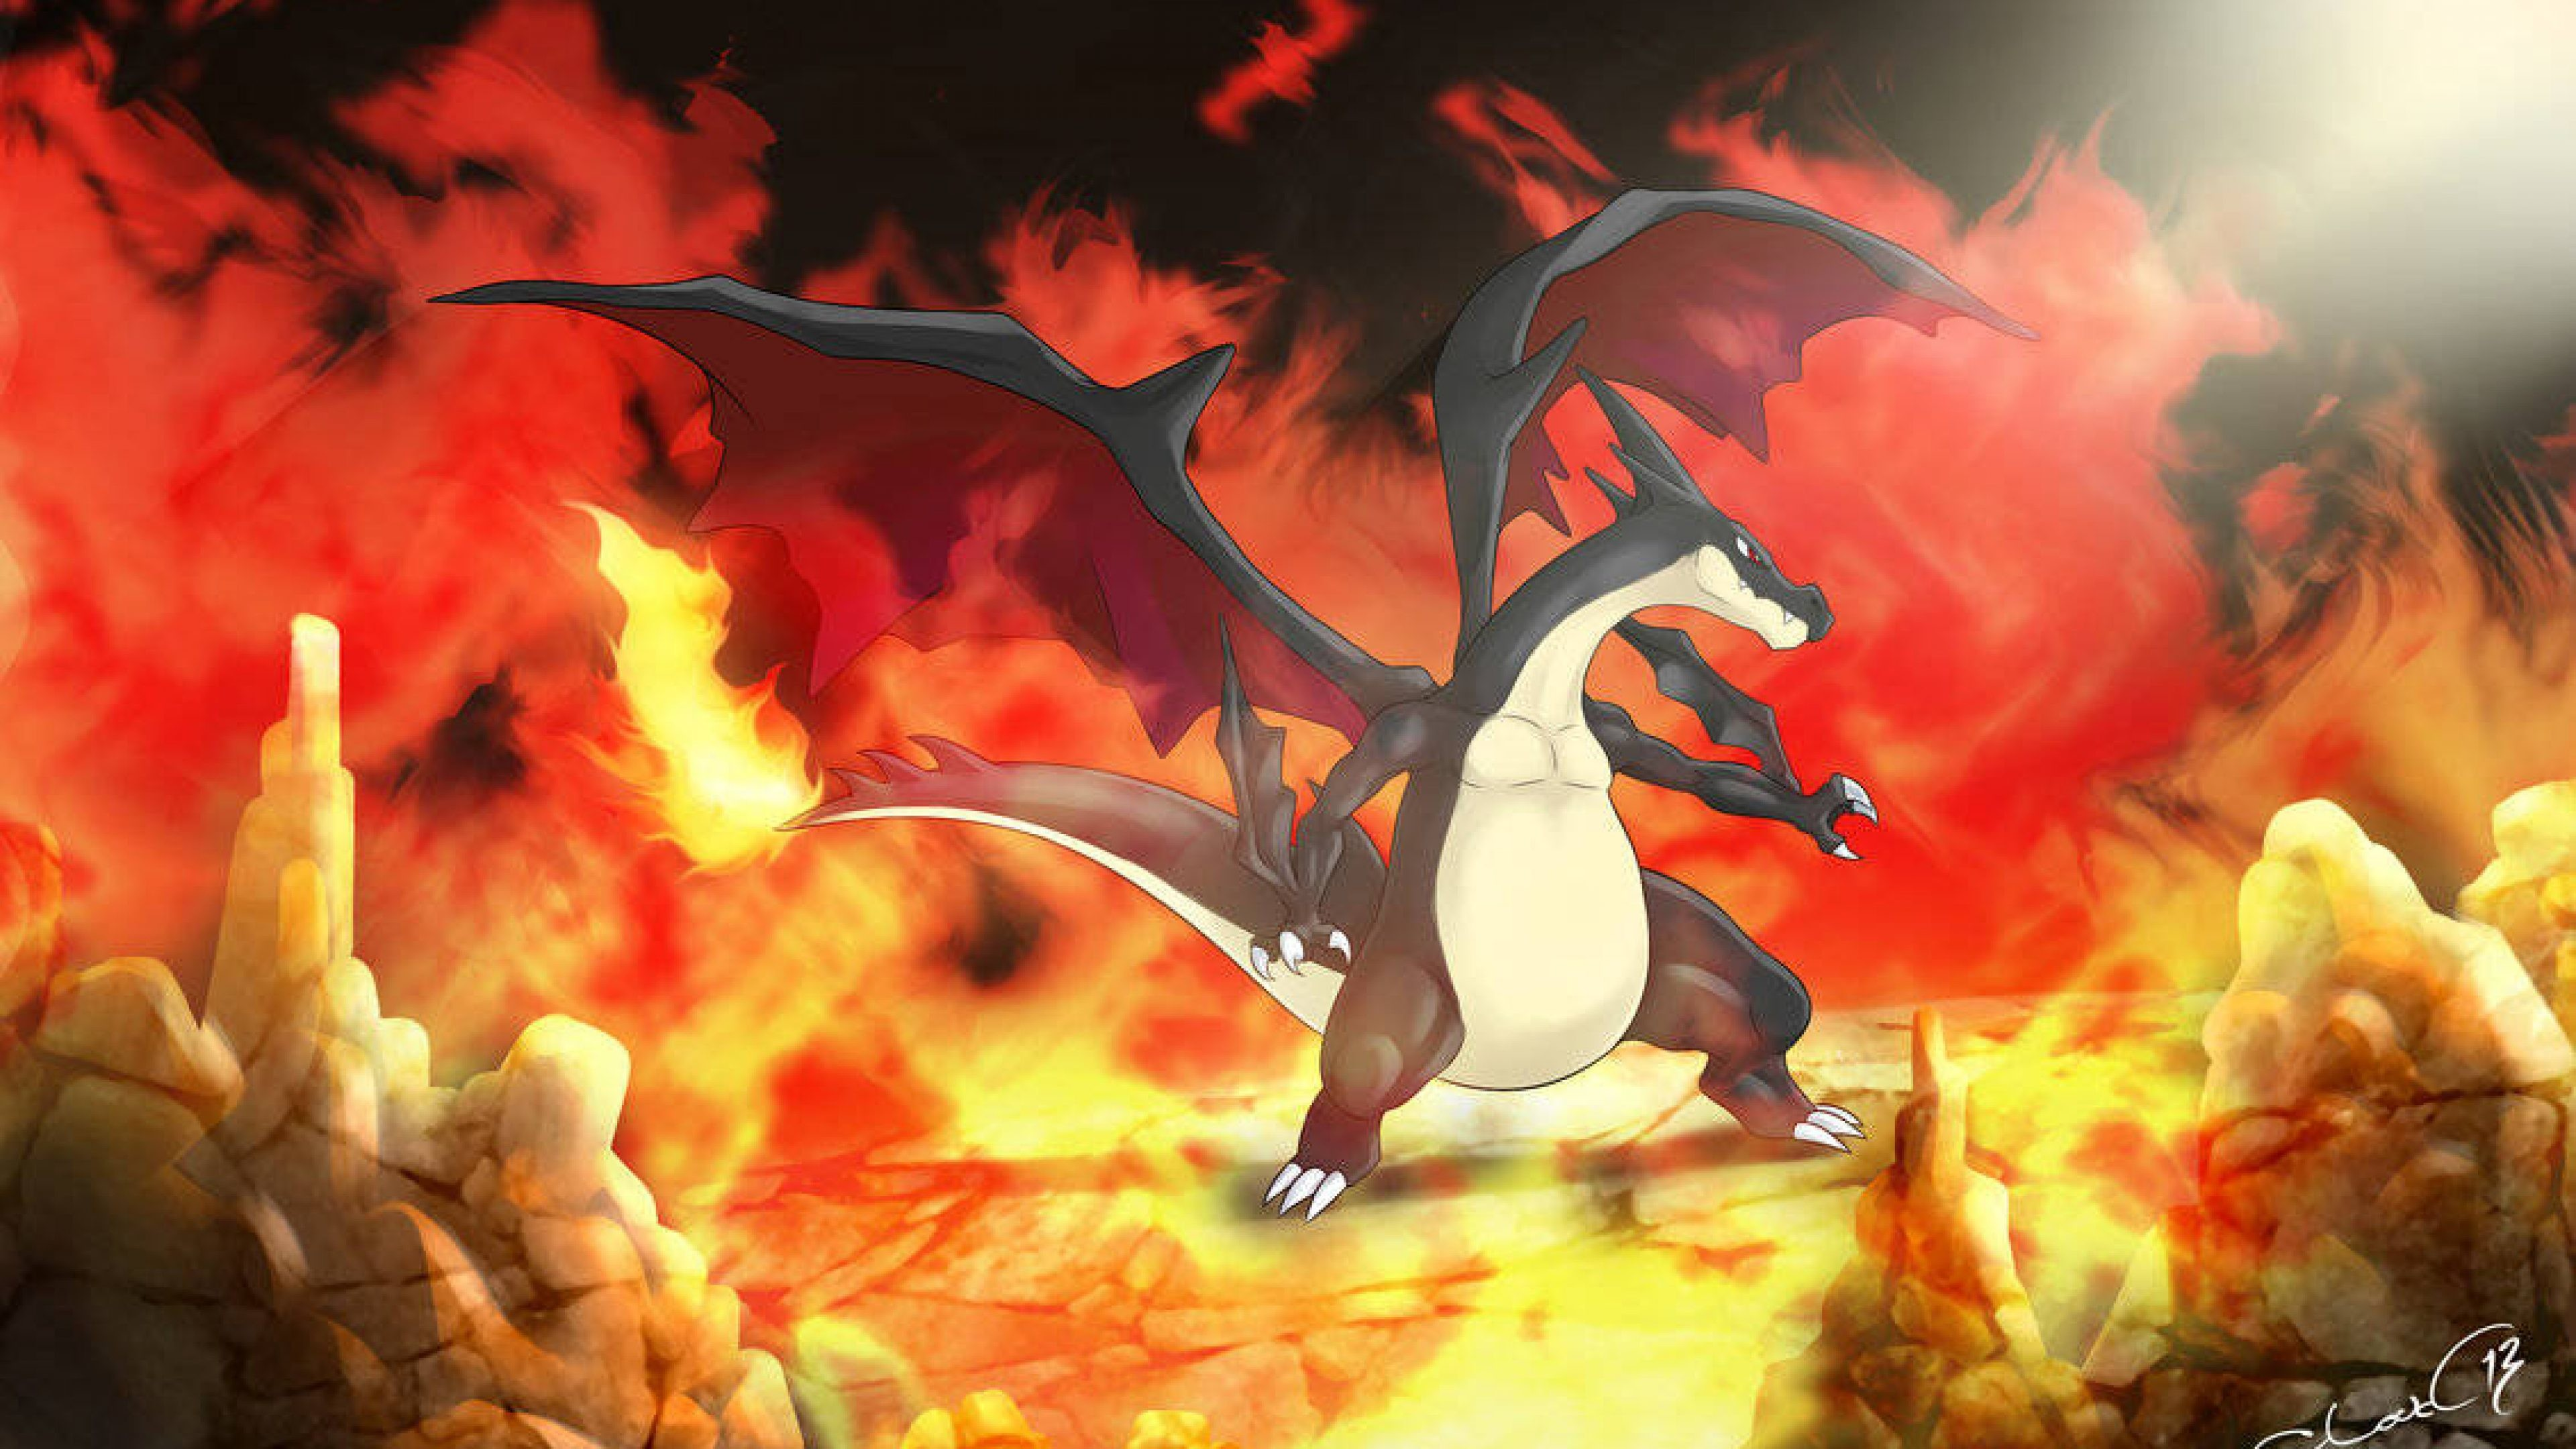 Sick Anime Wallpapers Charizard Phone Wallpaper 76 Images